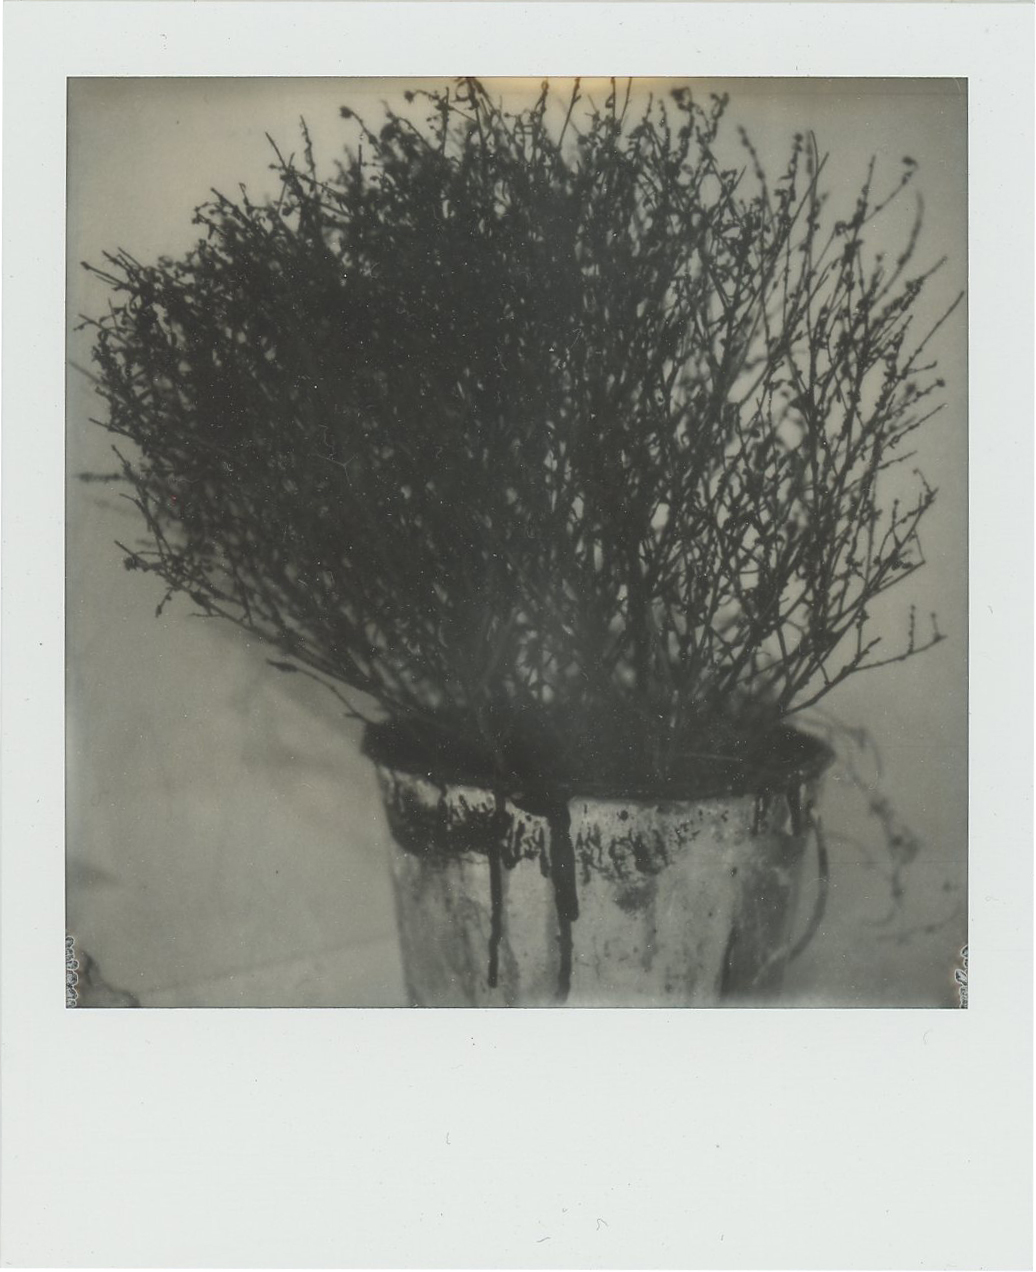 Bucket and Dead Plant, 2019